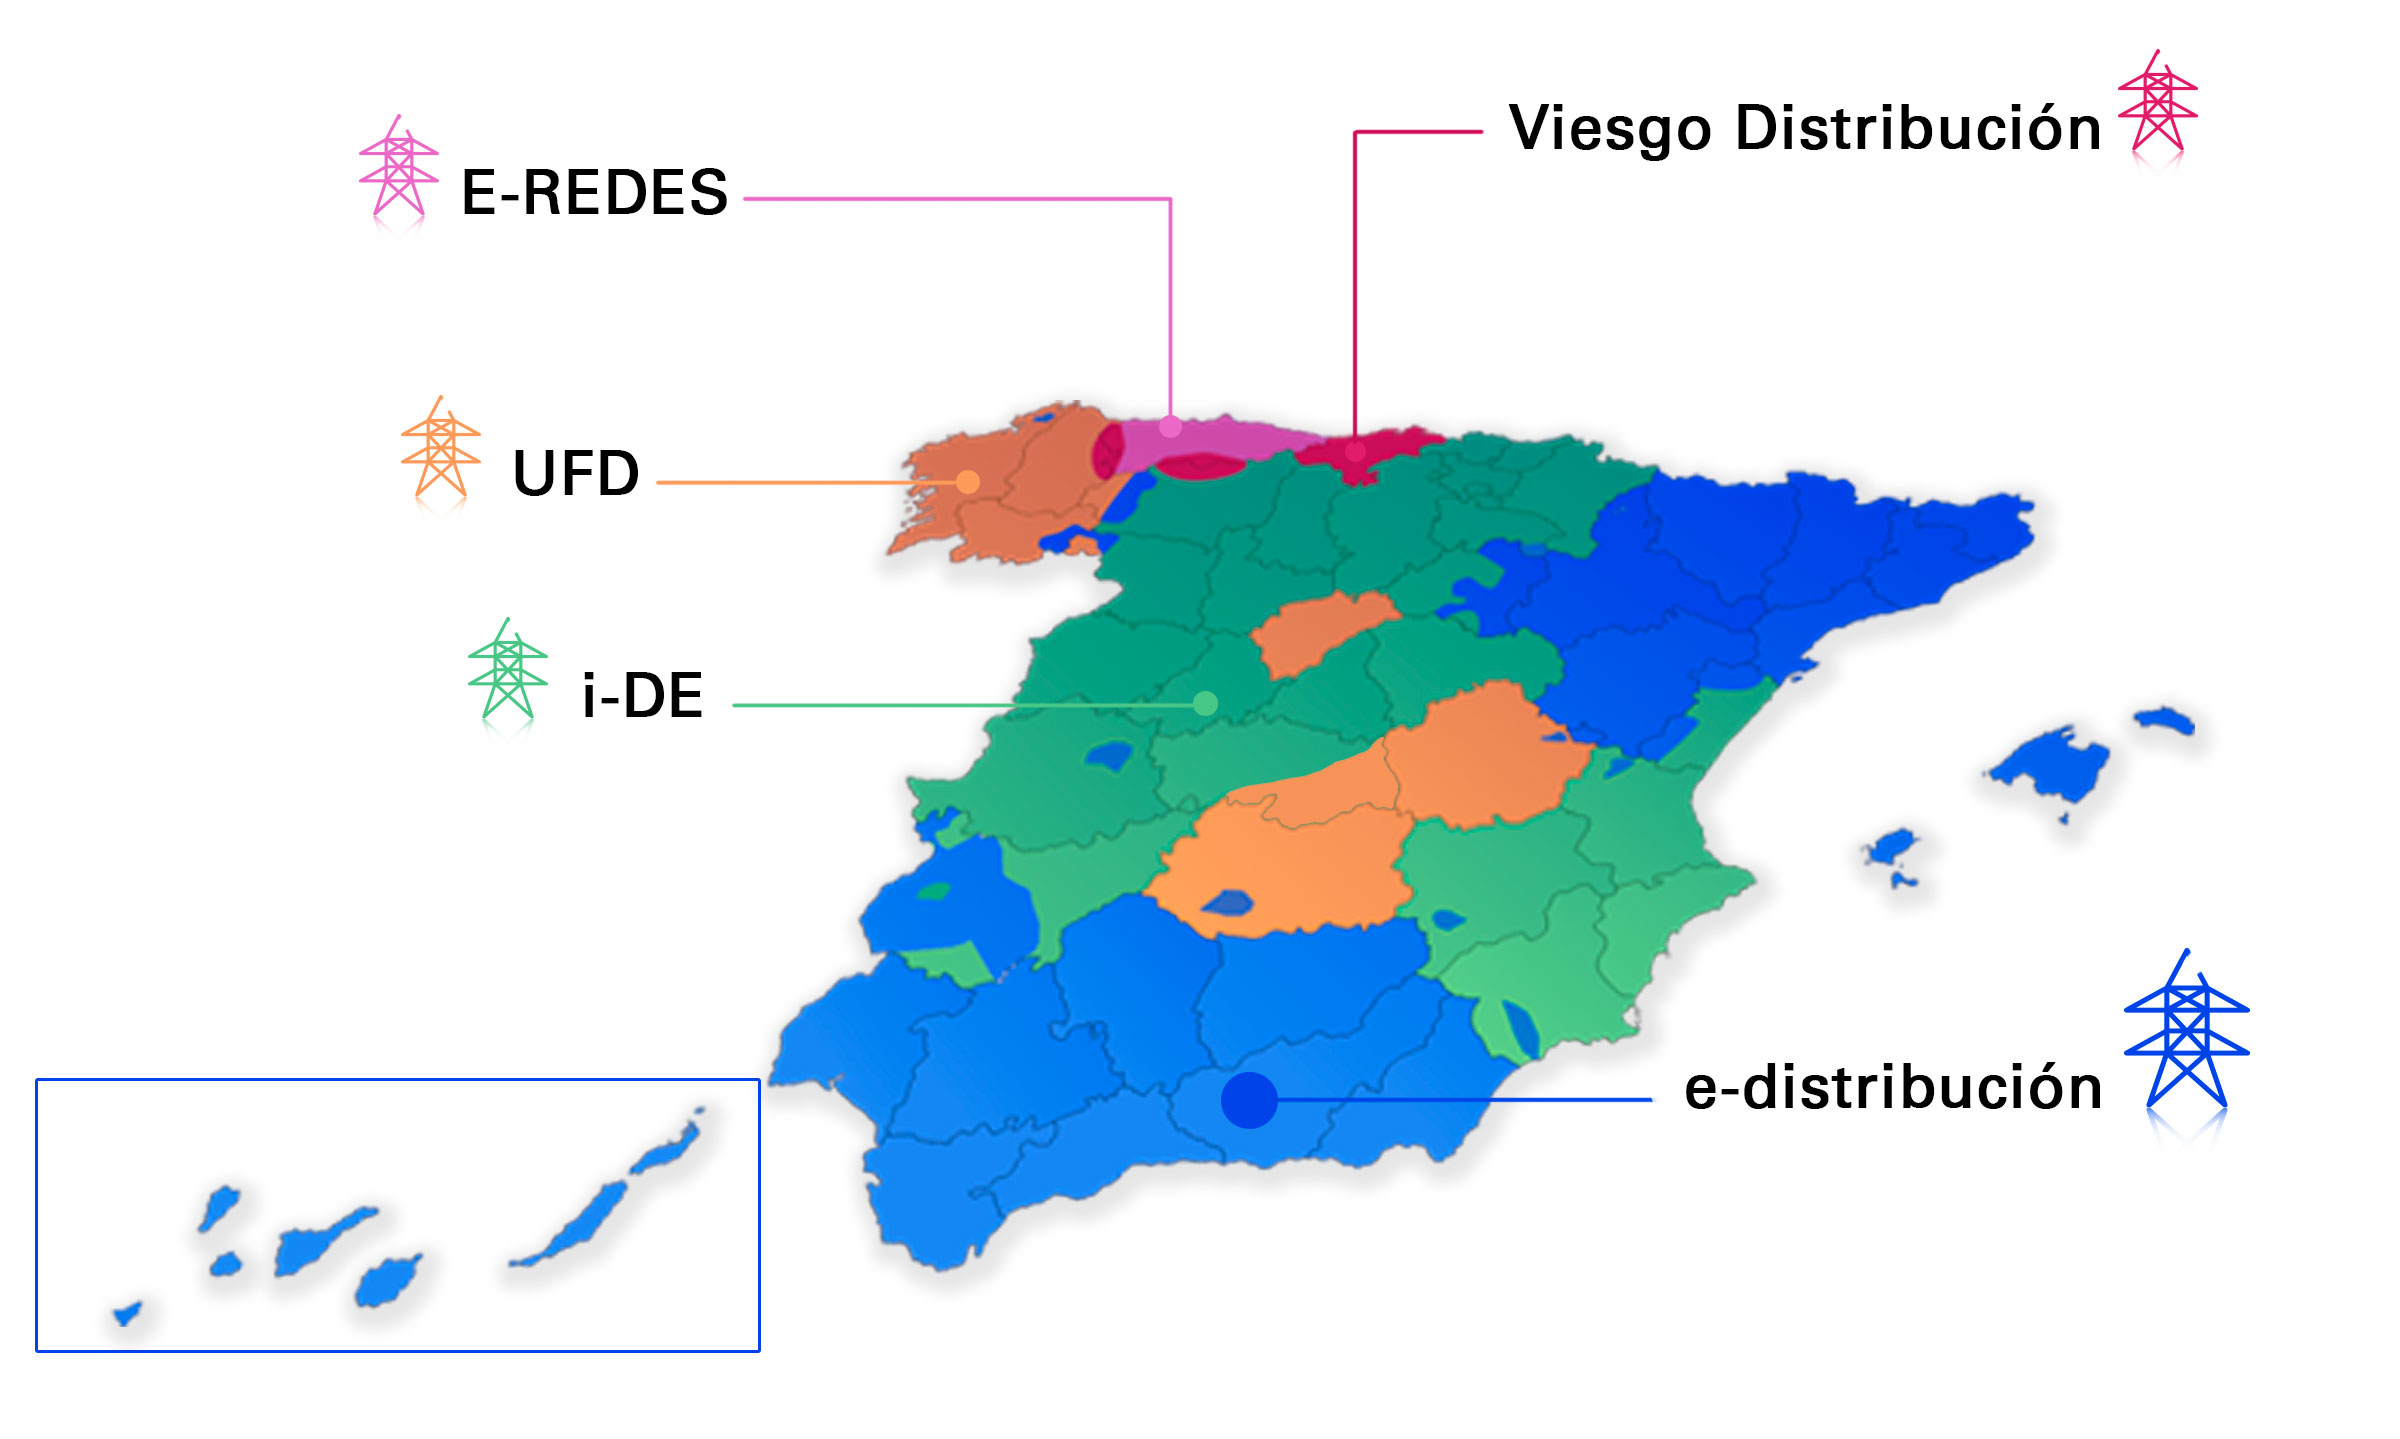 Map of Spain with the areas pertaining to each electricity distribution company.